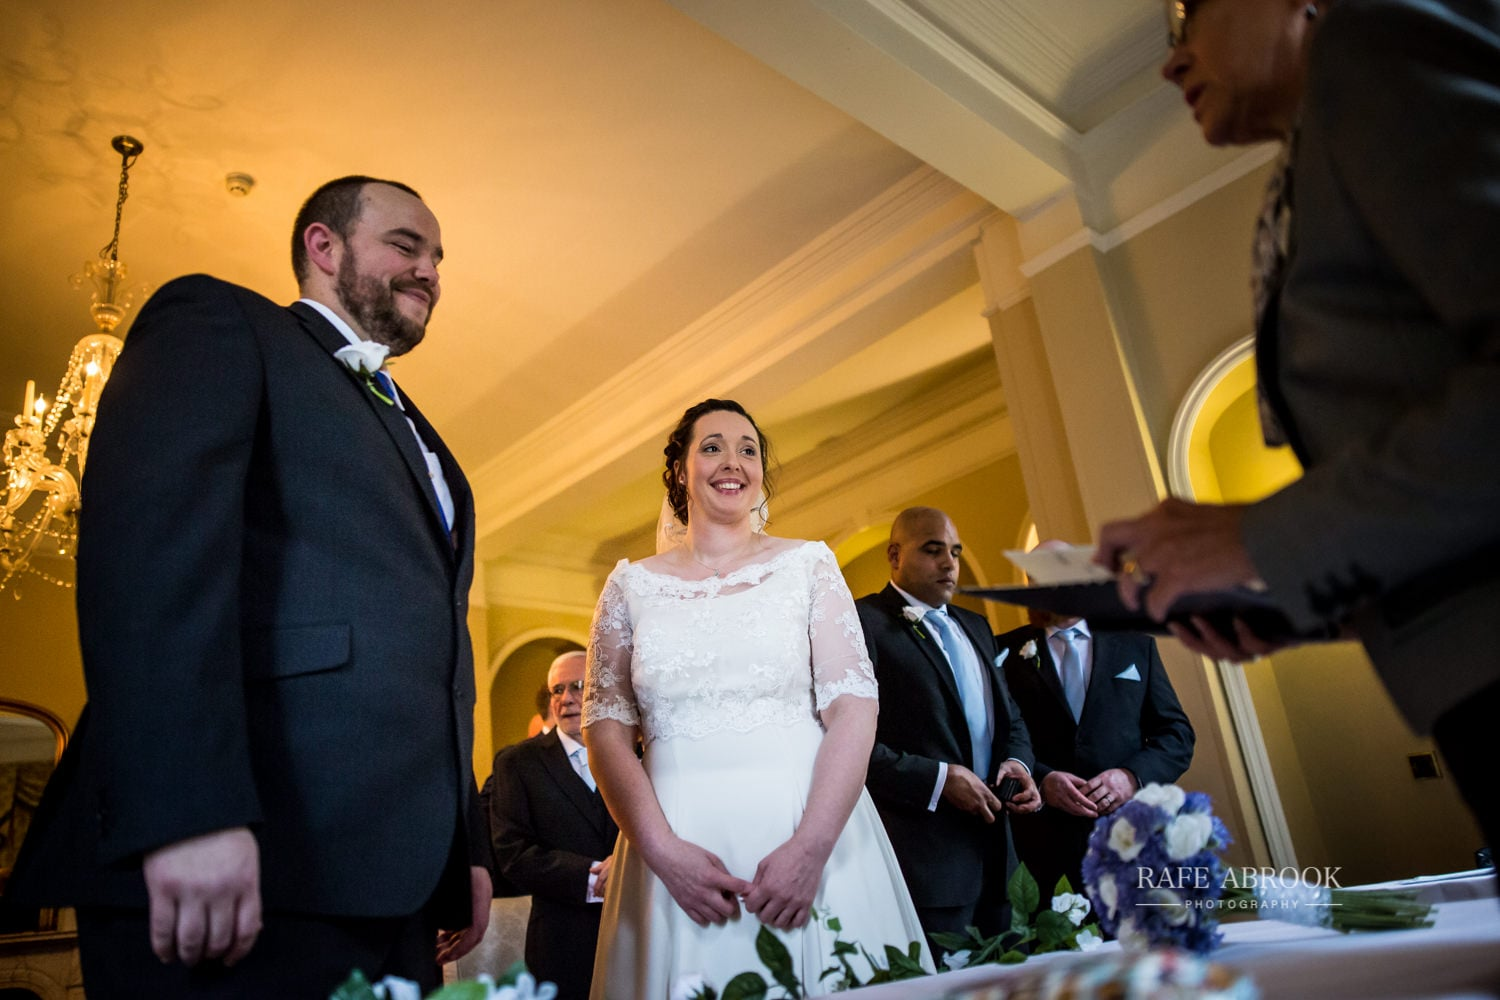 woodland manor hotel clapham bedford wedding hertfordshire wedding photographer-1085.jpg